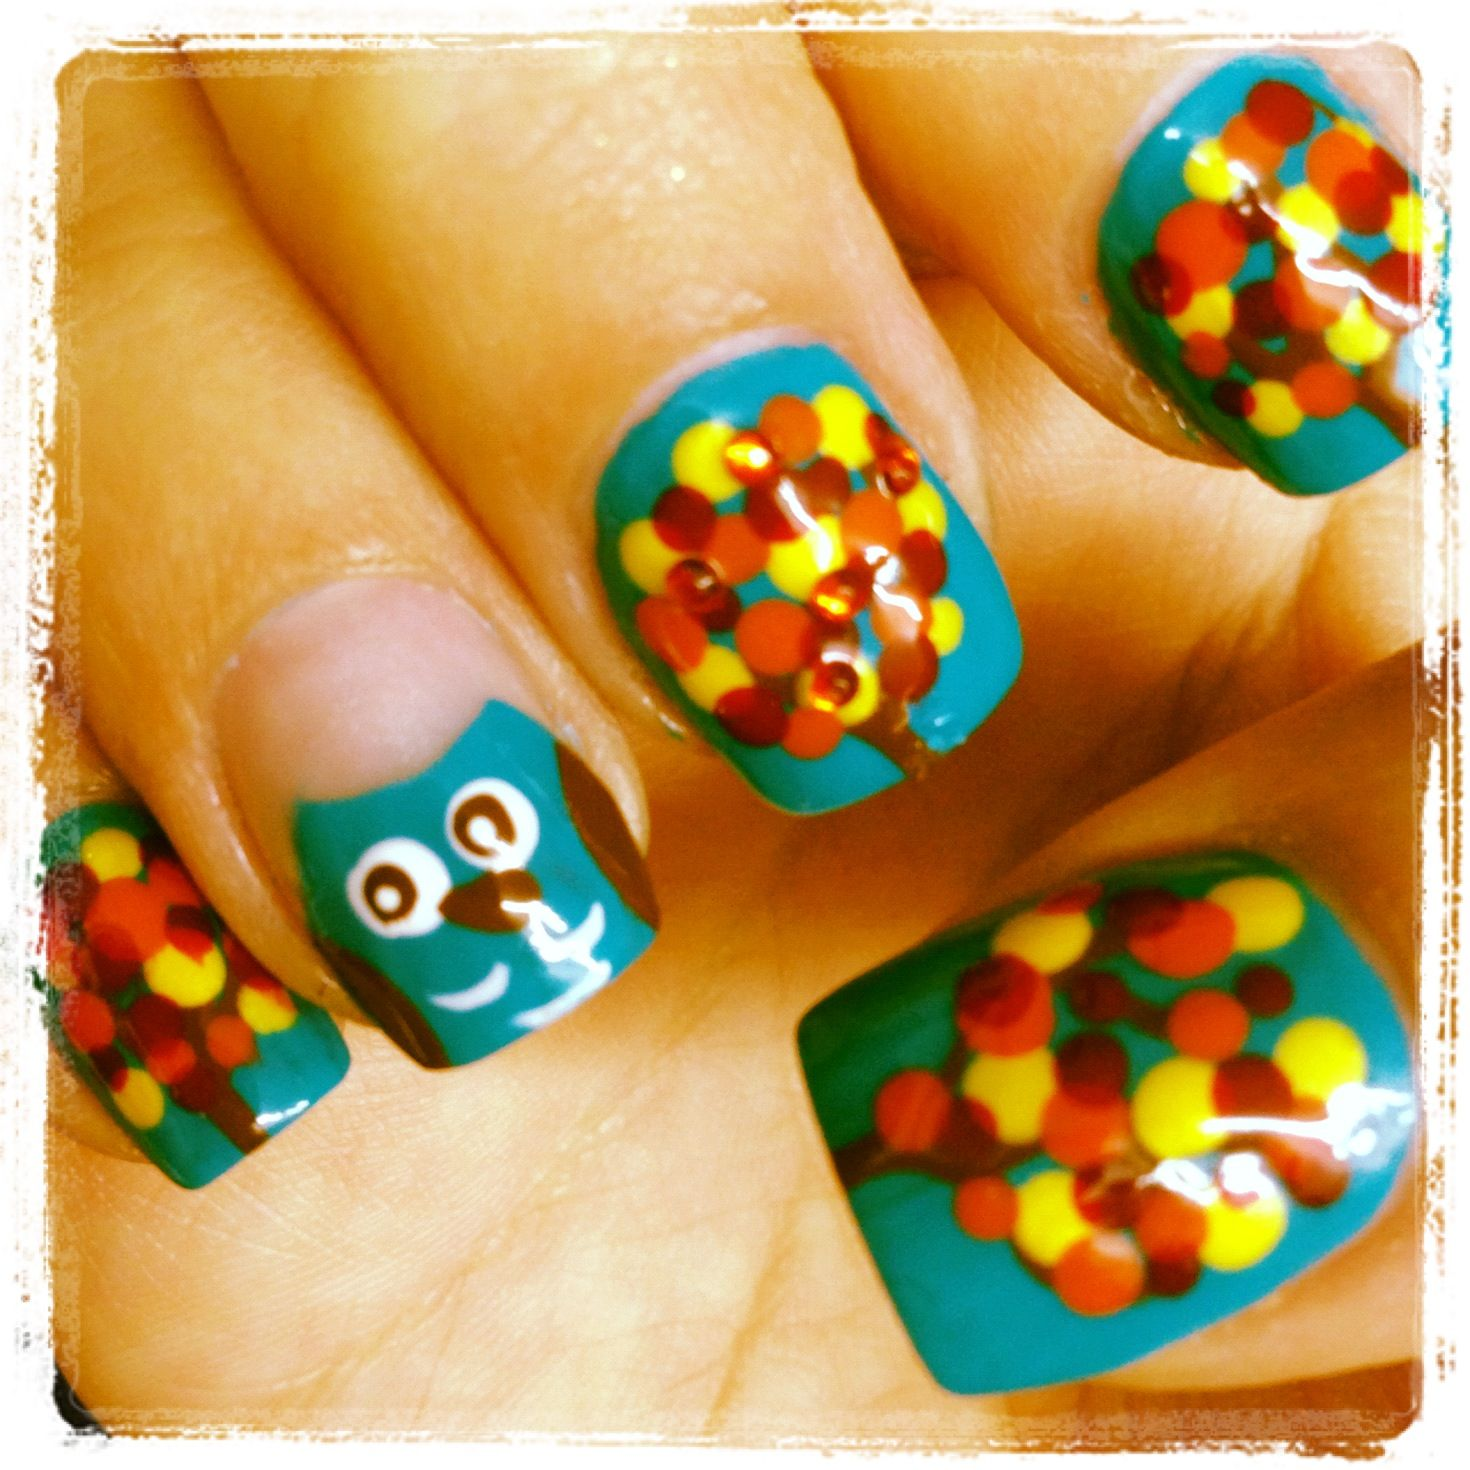 Owl fall nail designs #celebratefall #udderlysmooth | Udderly Smooth ...